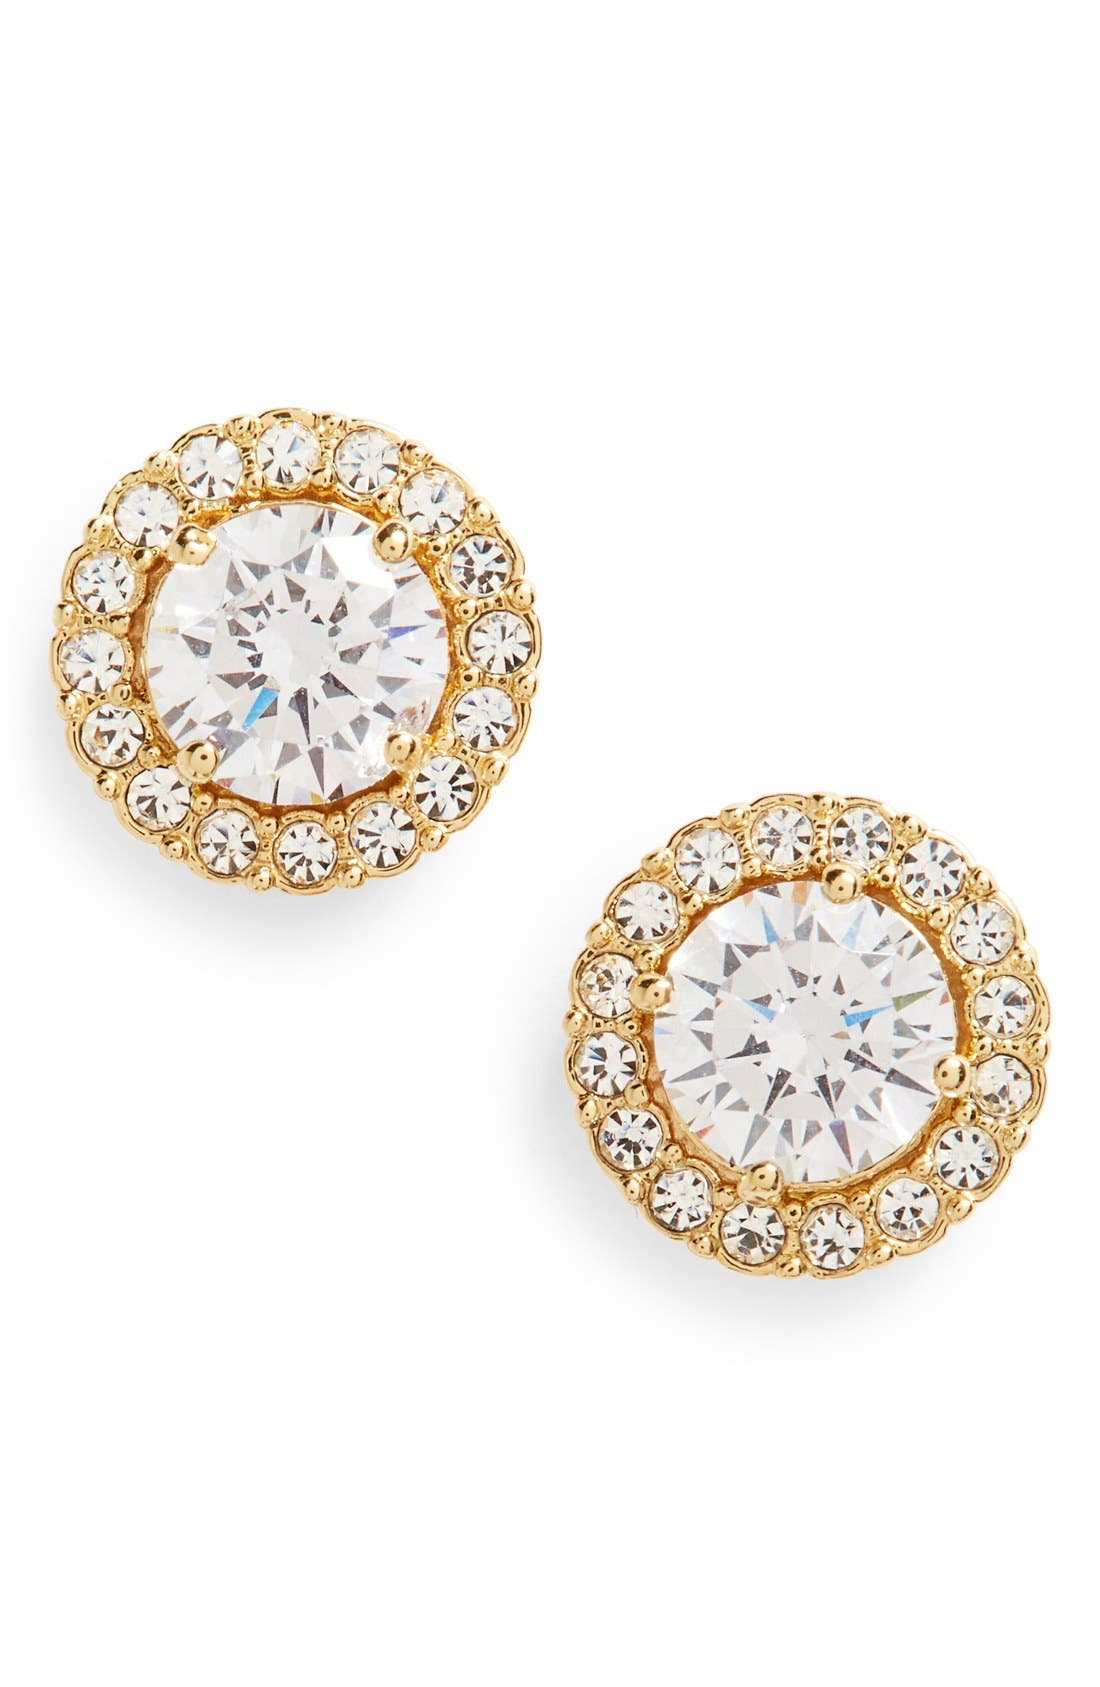 Alternate Image 1 Selected - Nadri Round Cubic Zirconia Stud Earrings